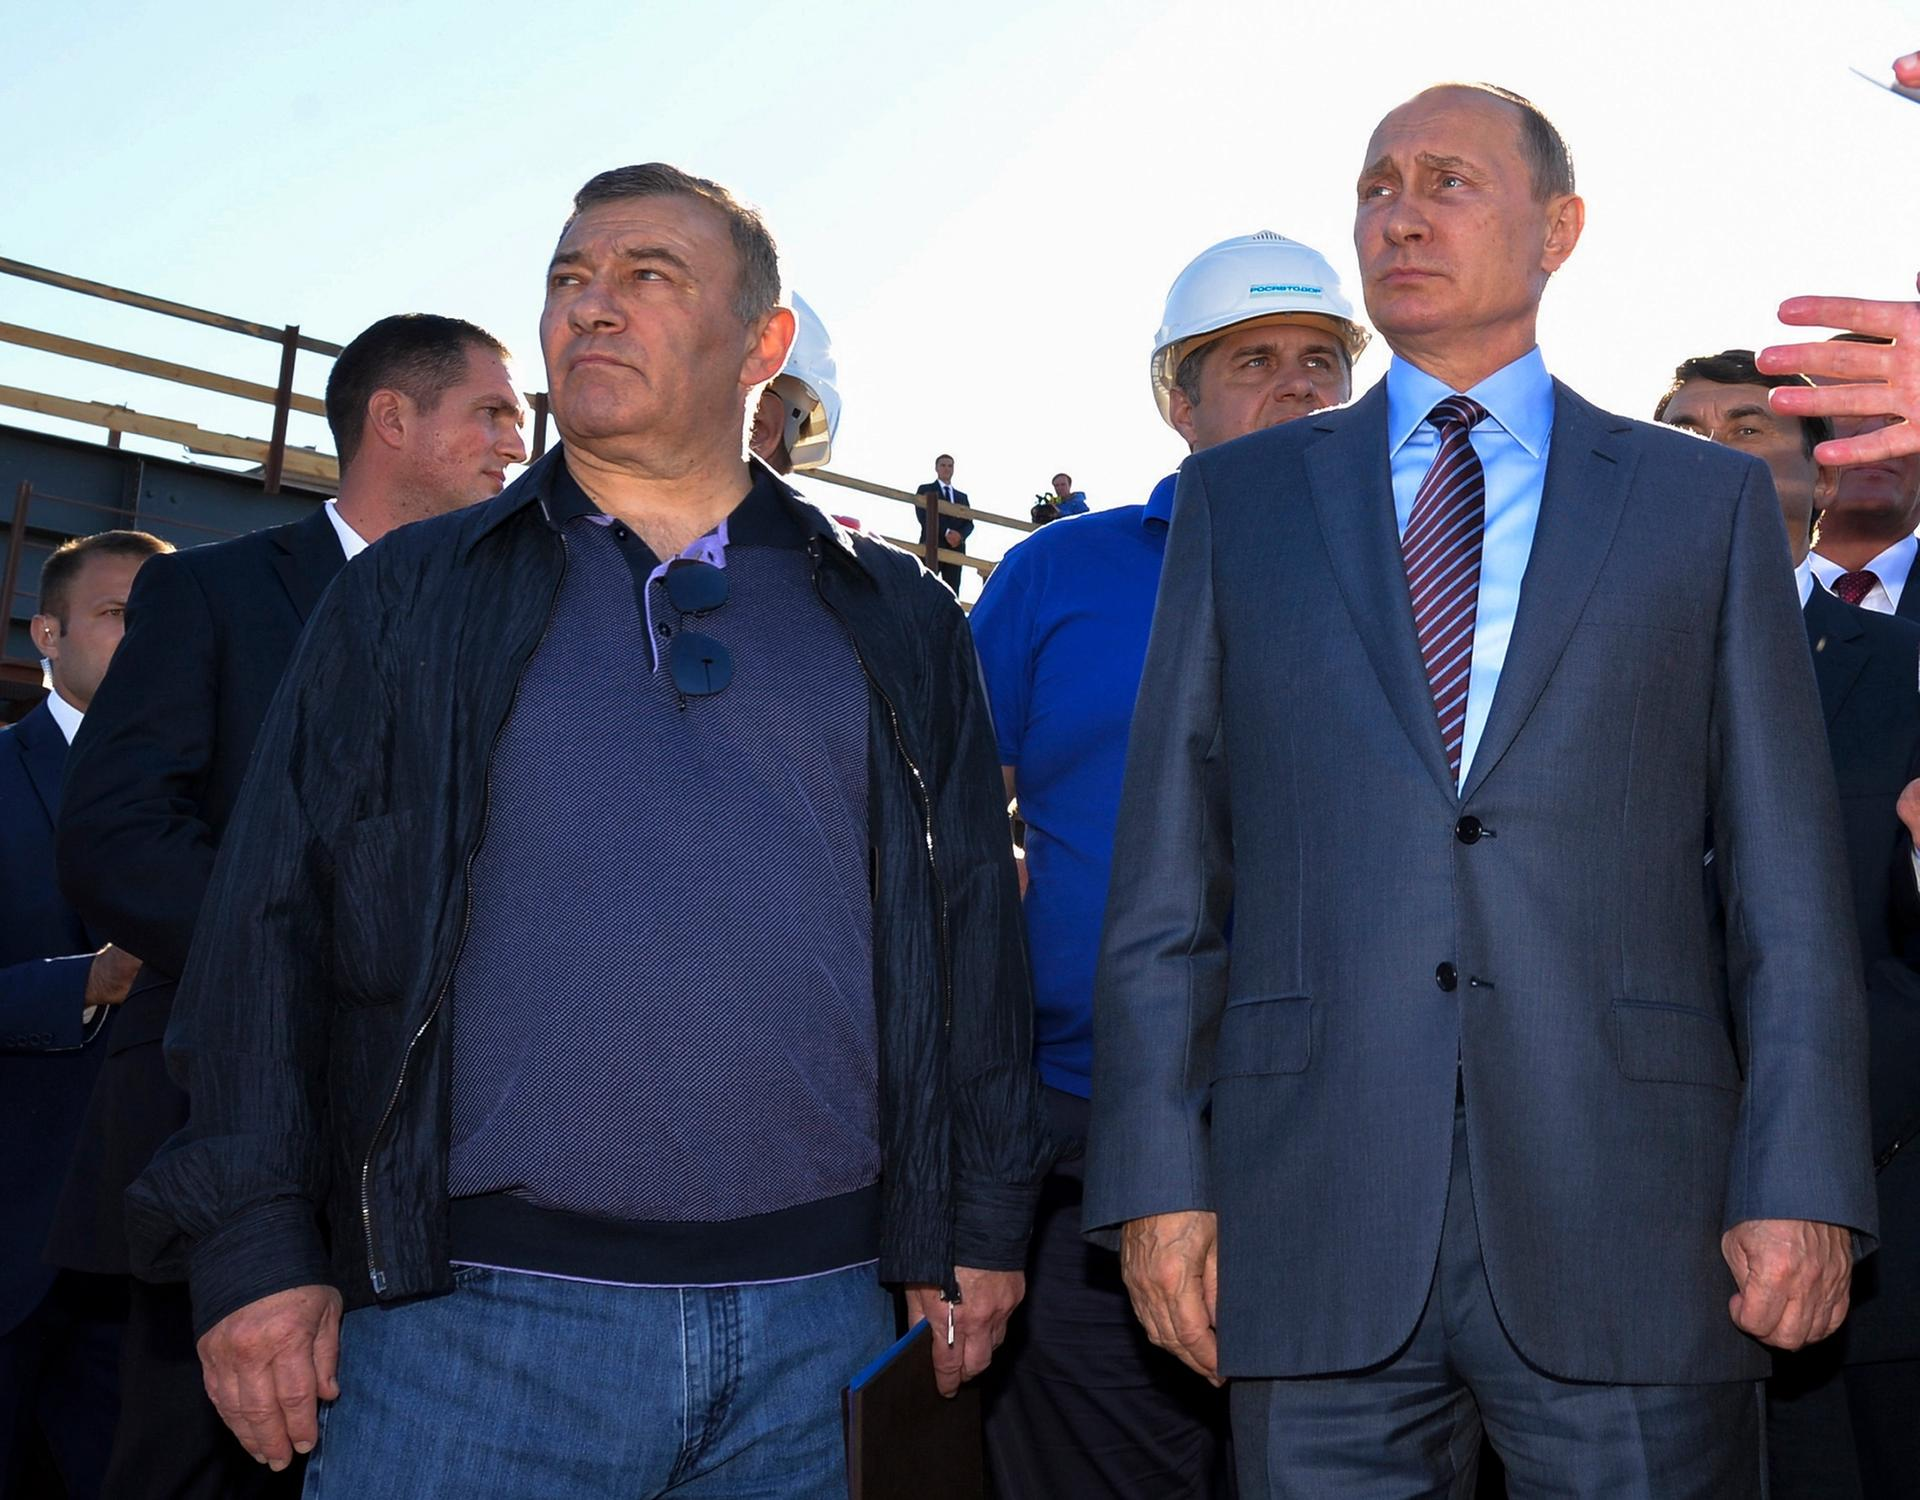 Russian President Vladimir Putin joins billionaire Arkady Rotenberg (left), during to a visit to the construction site of the Kerch Strait bridge in Kerch, Crimea. Investigators traced $18m in art purchases to shell companies linked to Rotenberg and his brother Boris, who are close Putin associates who American officials say benefited financially from the annexation of Crimea Alexei Druzhinin/Sputnik, Kremlin, File Pool Photo via AP